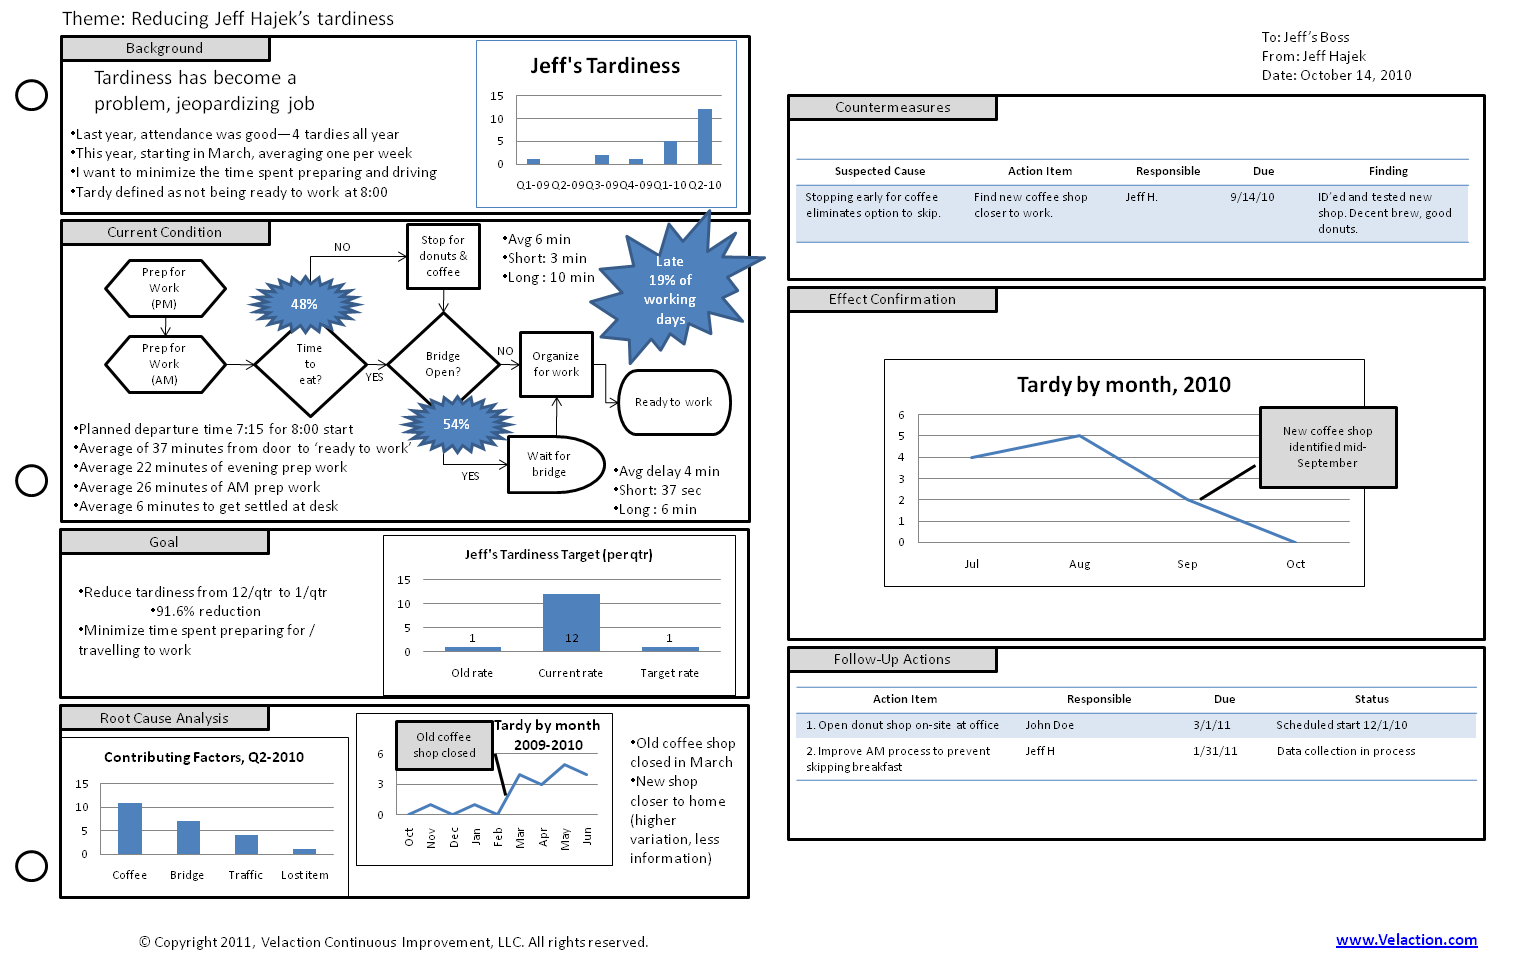 A Template A Tool To Organize And Summarize Content At A High